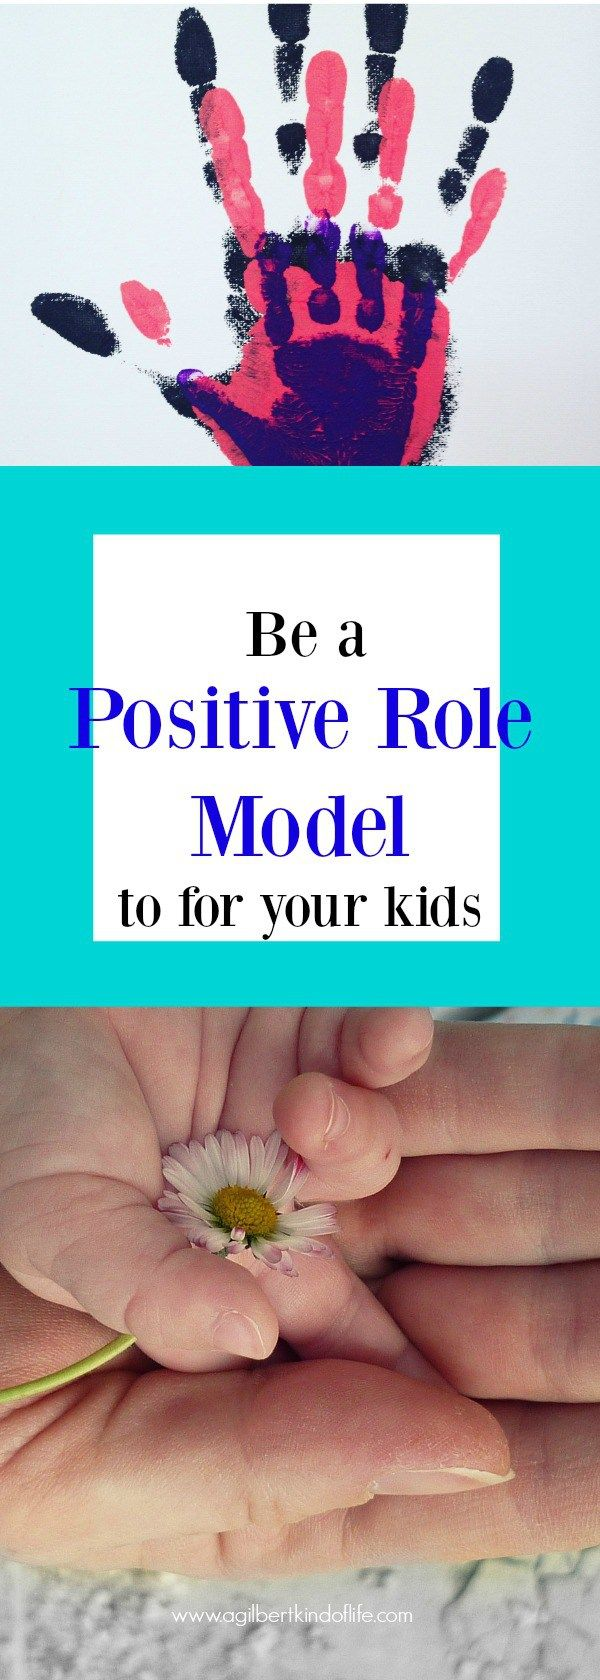 Becoming A Positive Role Model For Our Children May Be One Of Our Most  Important Jobs